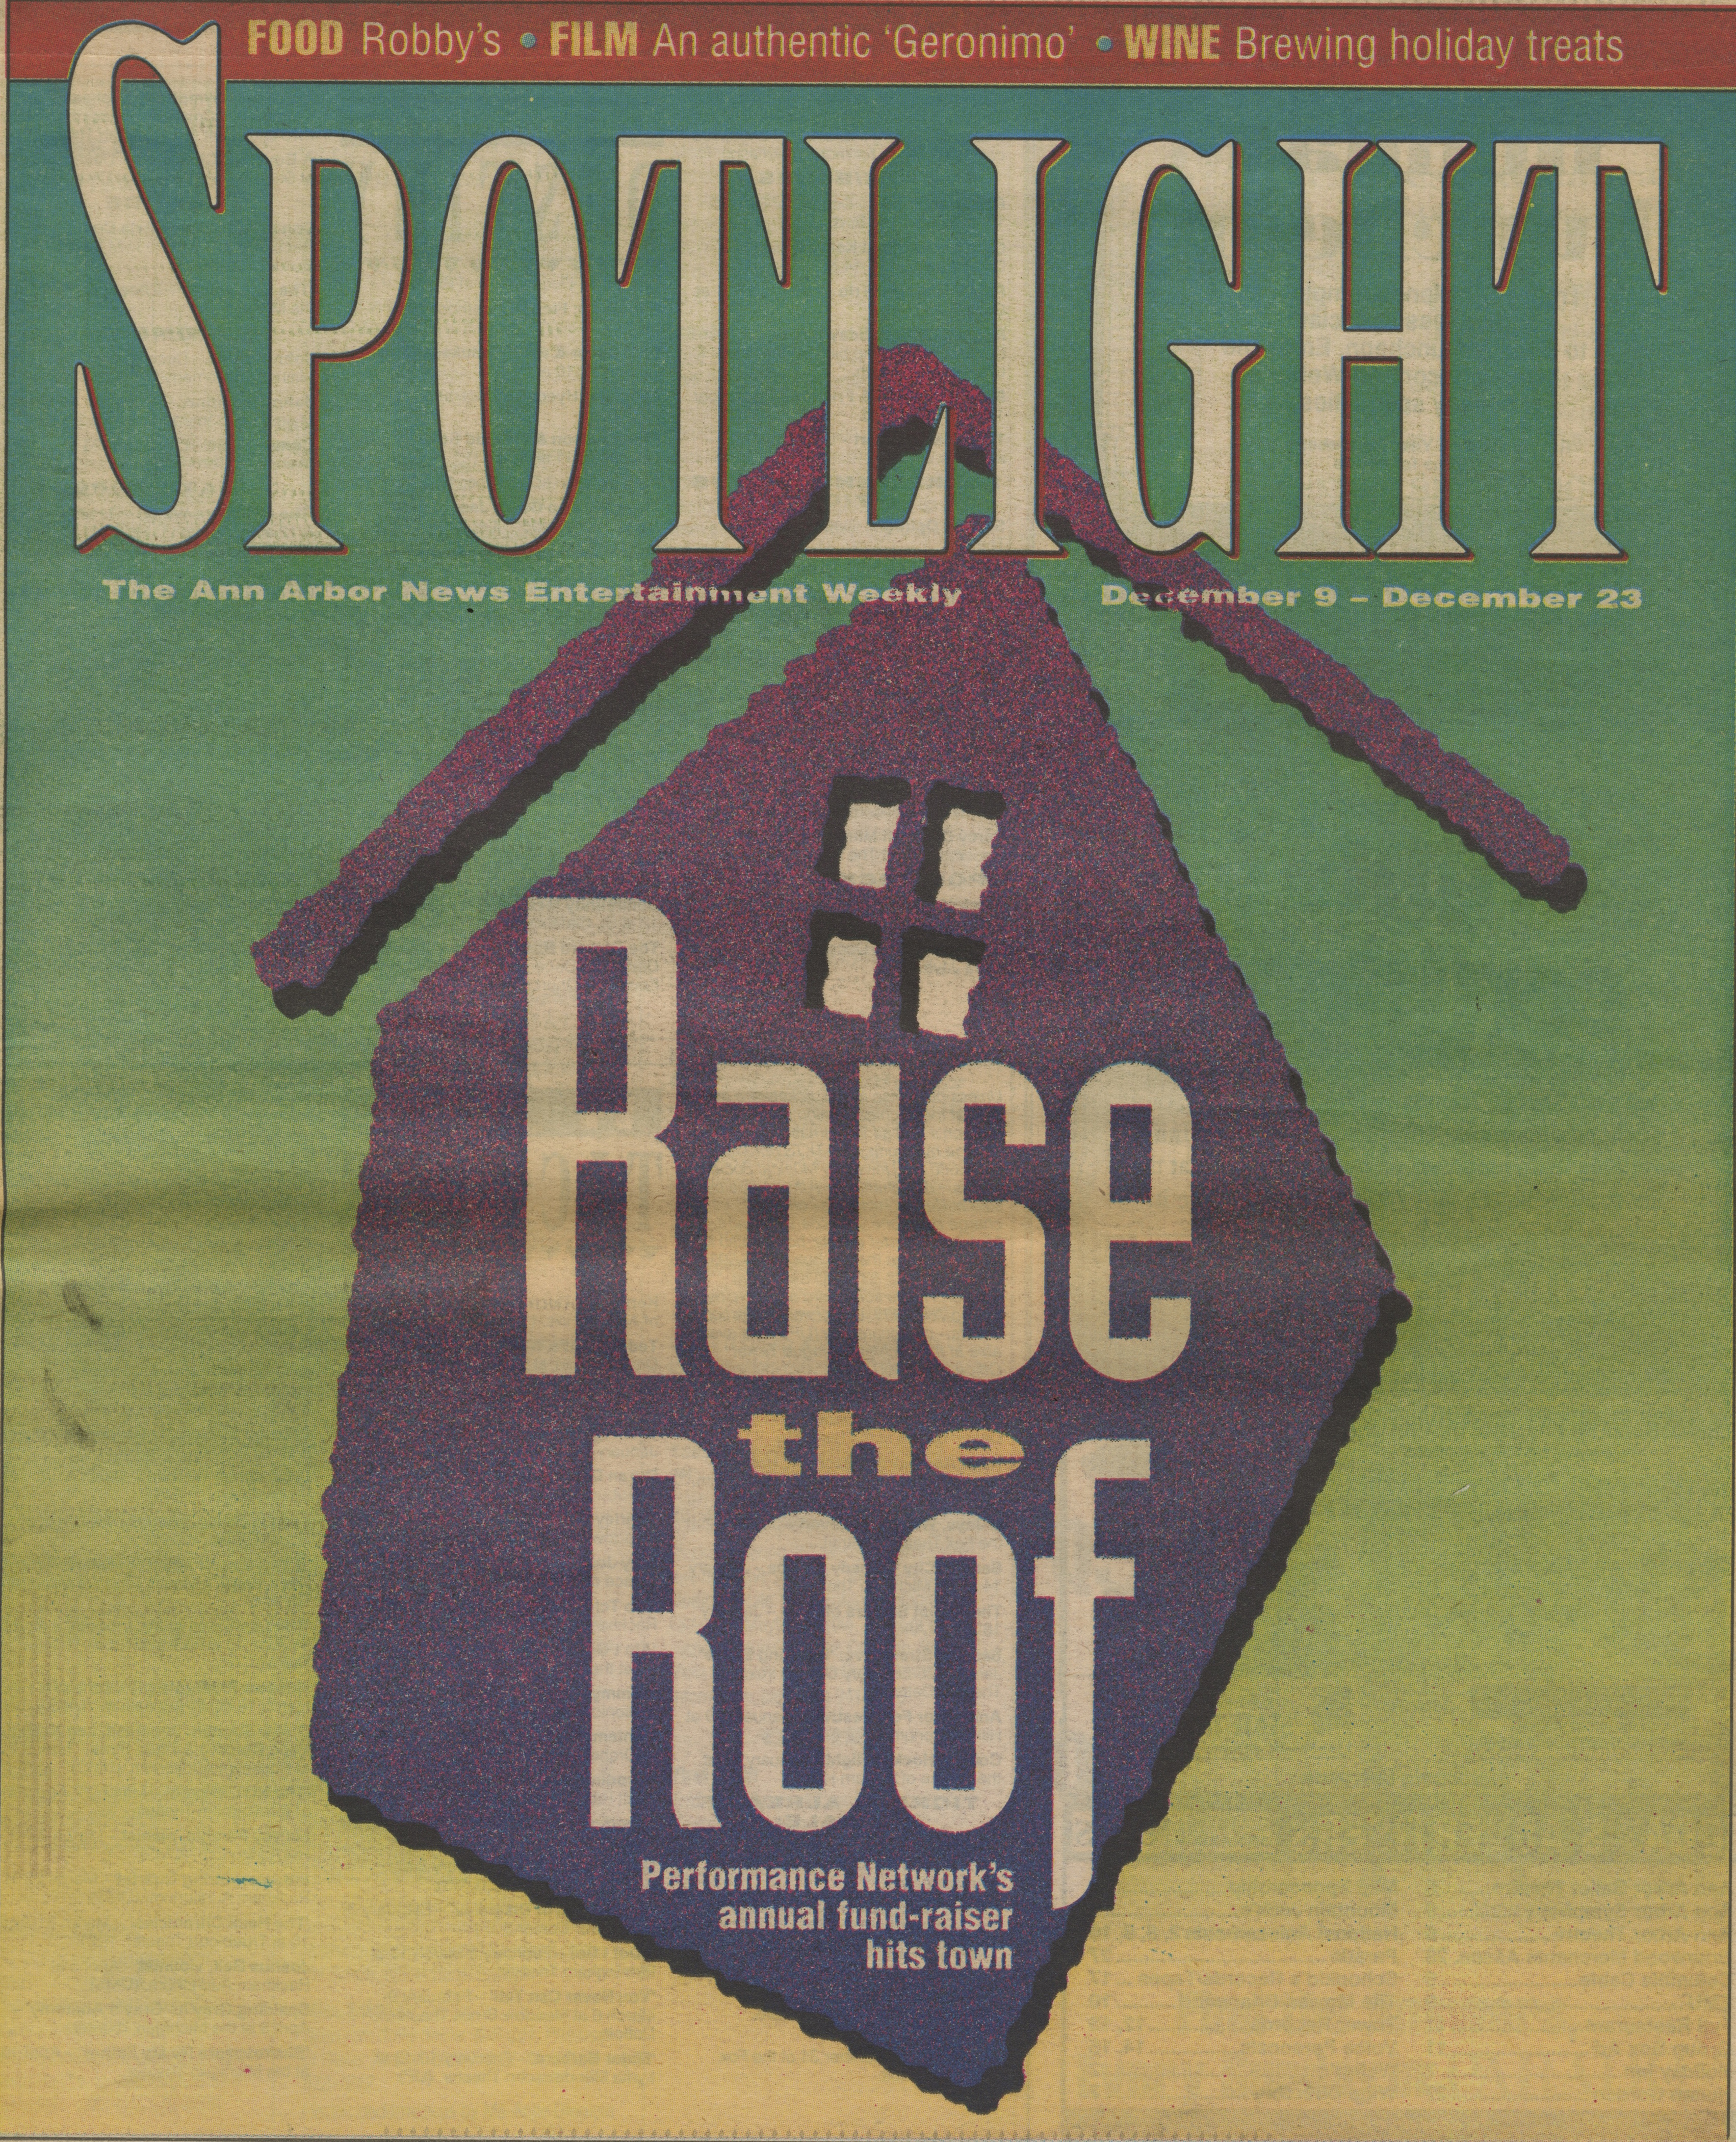 Anything's possible at 'Raise the Roof' image